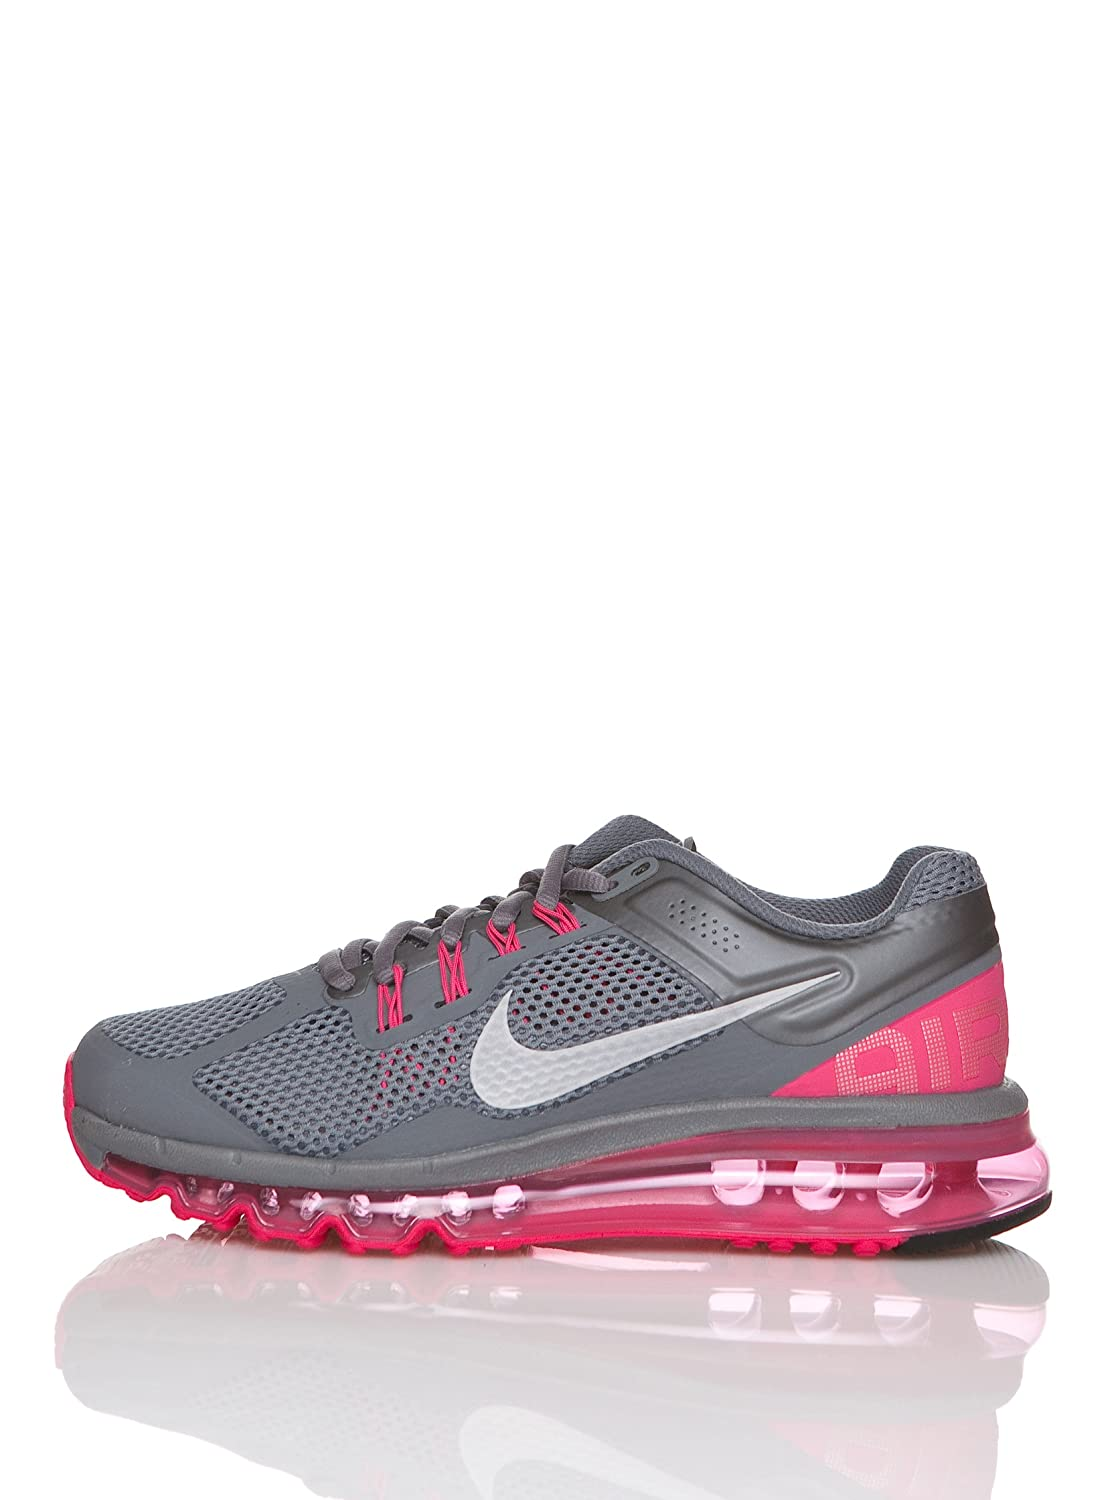 GreyReflect Nike Shoes Running Womens Clay Air Max2013 n0PZ8OkXNw